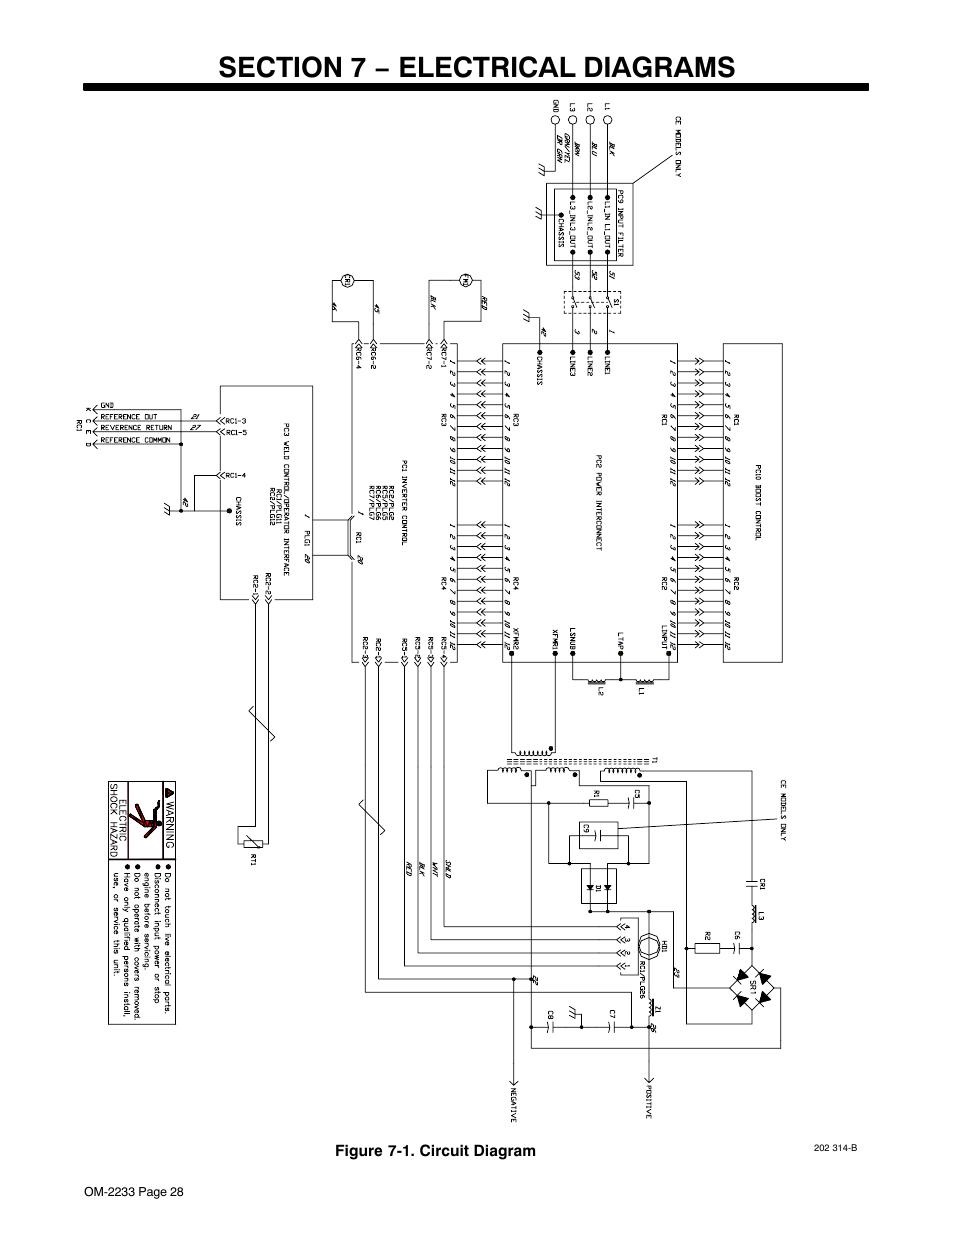 hight resolution of section 7 electrical diagrams miller electric maxstar 200 str user manual page 34 56